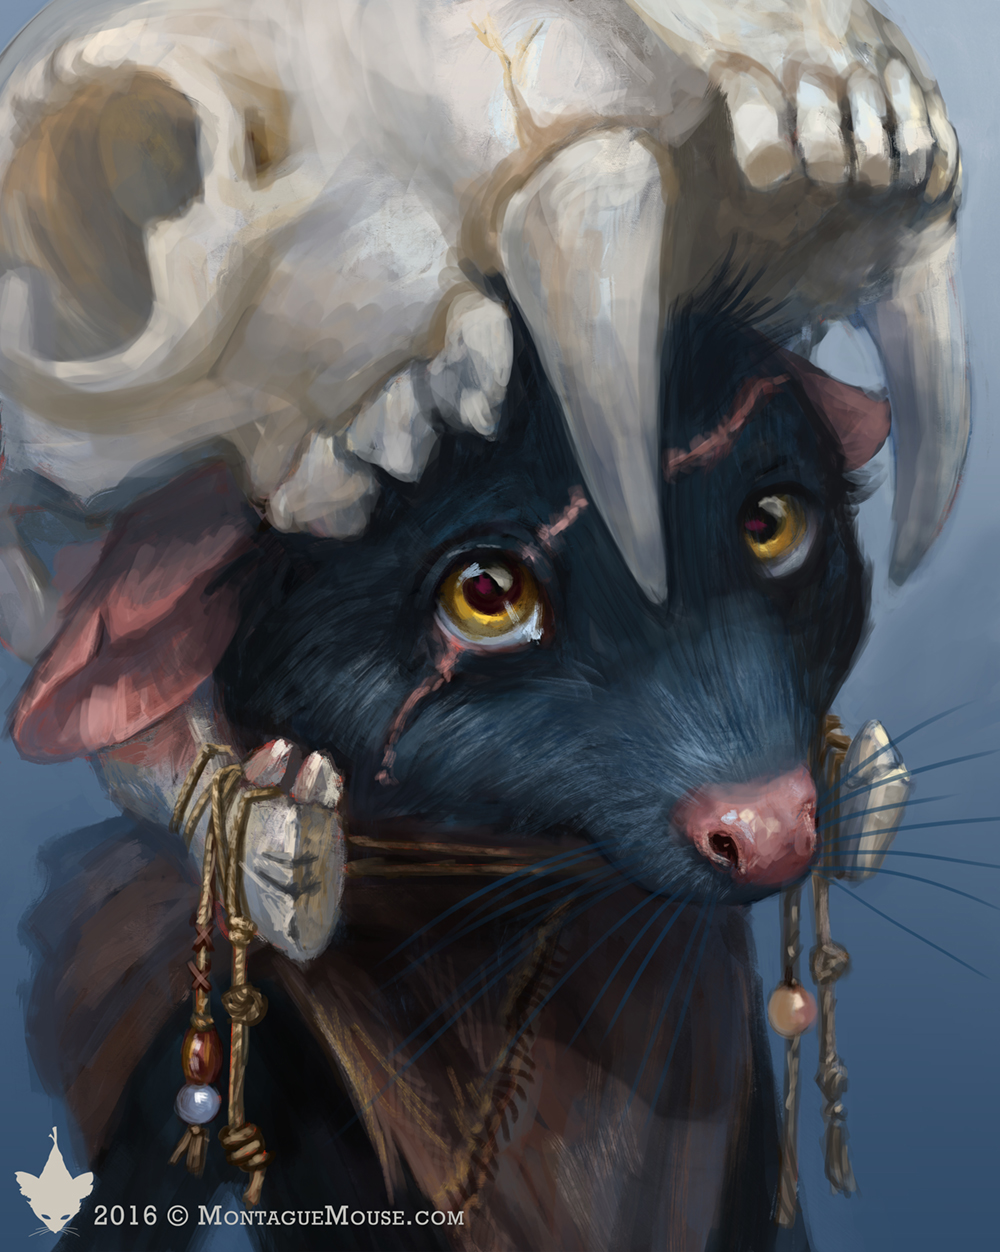 Character portrait of Svea from MontagueMouse.com. Svea is a black mouse from the Skullhollow tribe that Montague makes friends with. Find more at MontagueMouse.com. Art by KiriLeonard.com